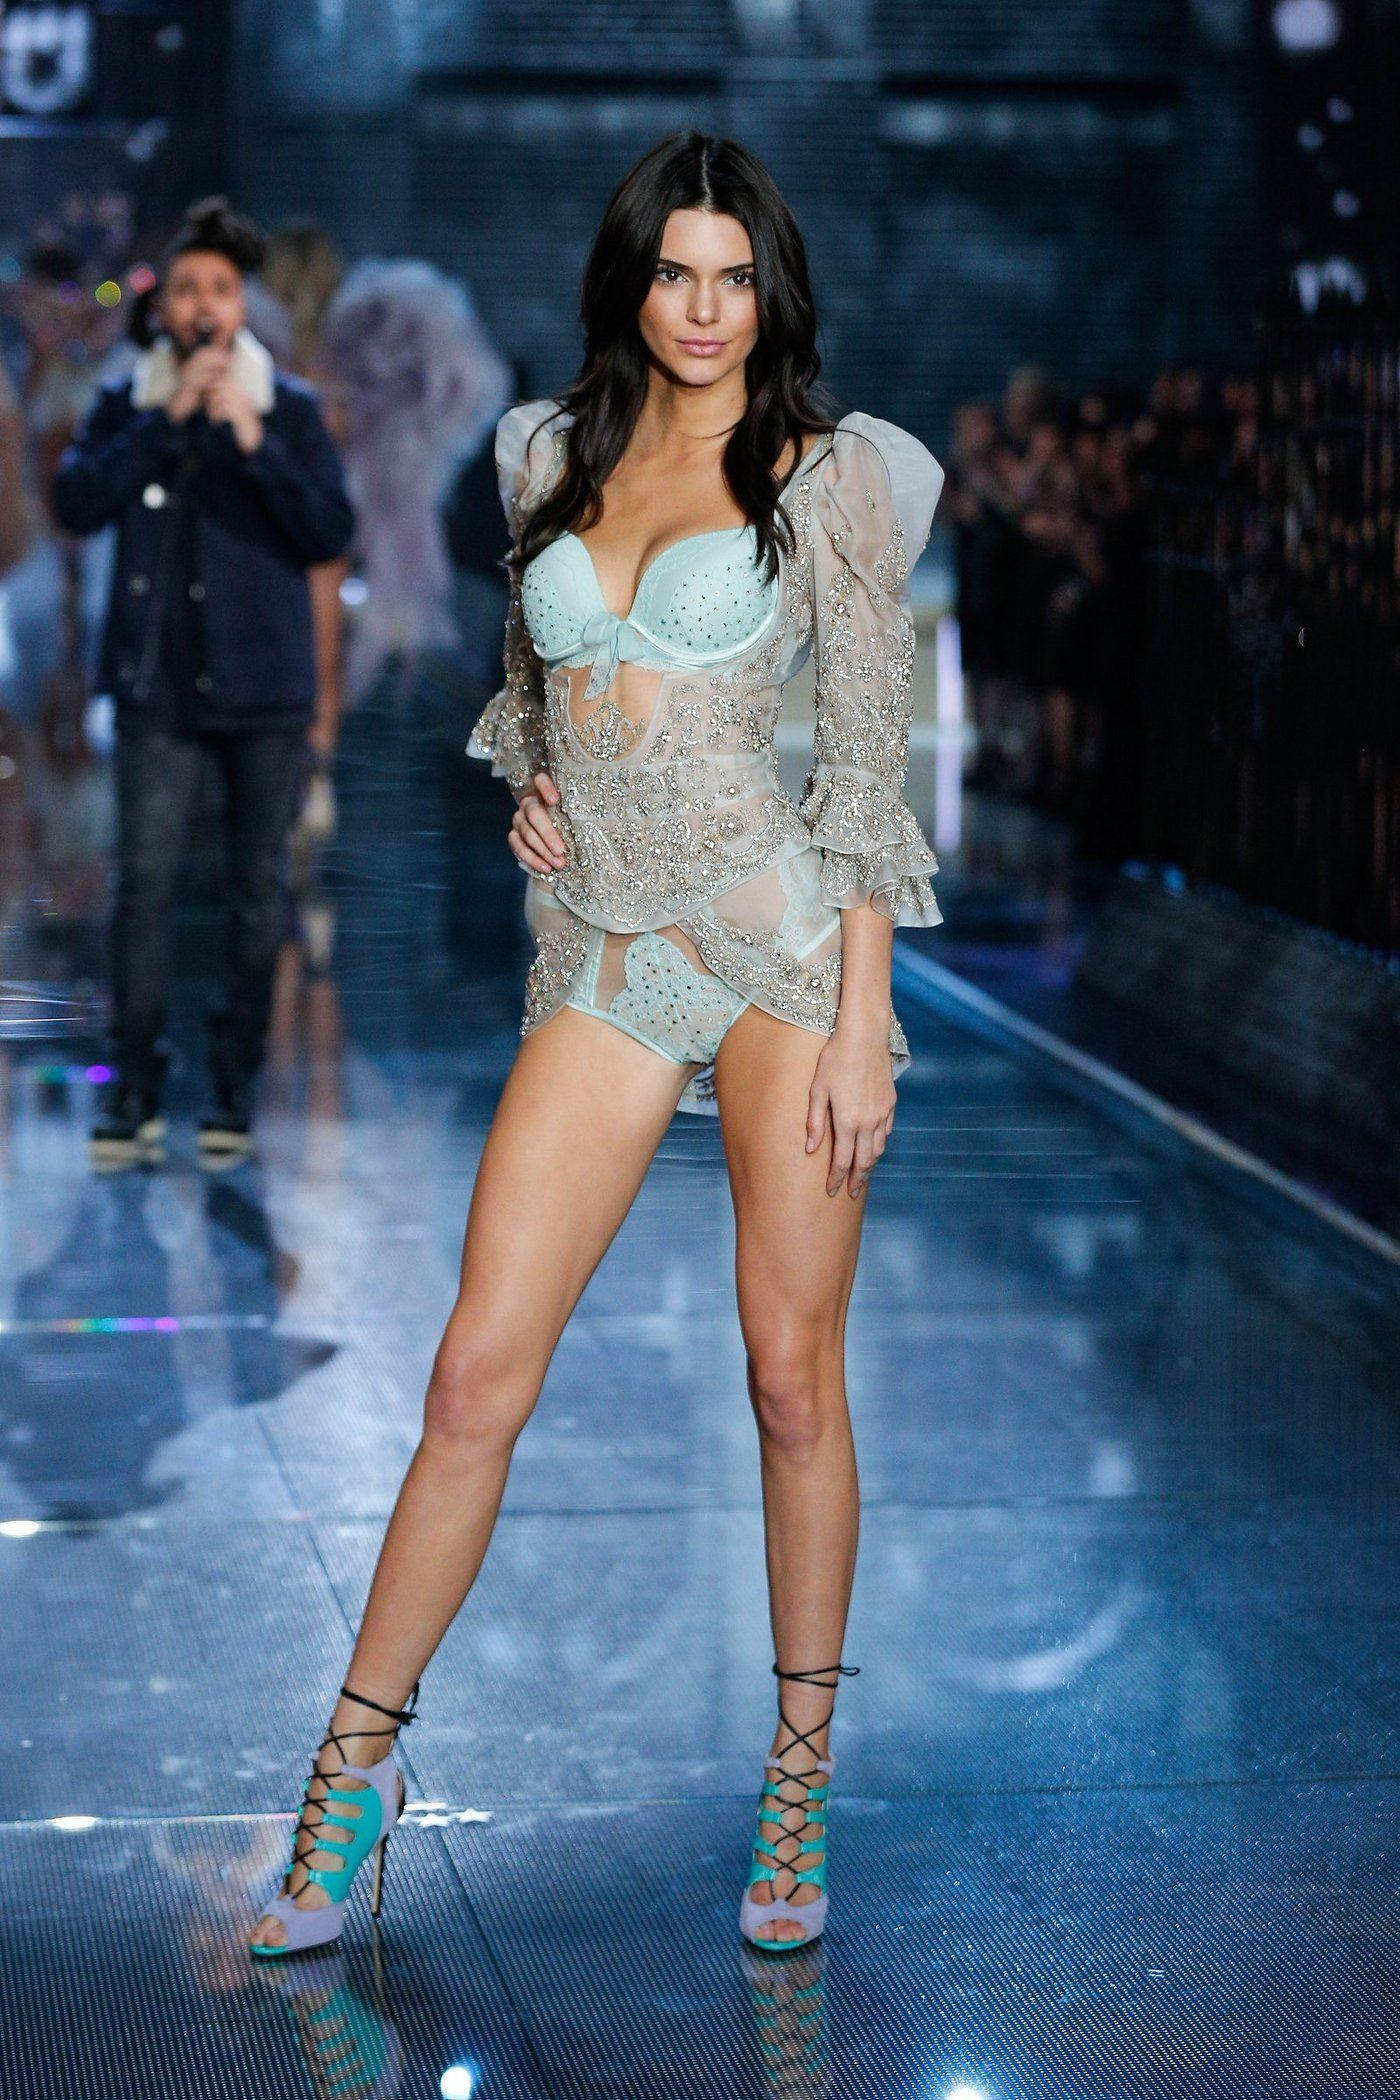 The 7 Runway Moments That Made Kendall Jenner a Modeling Superstar ...